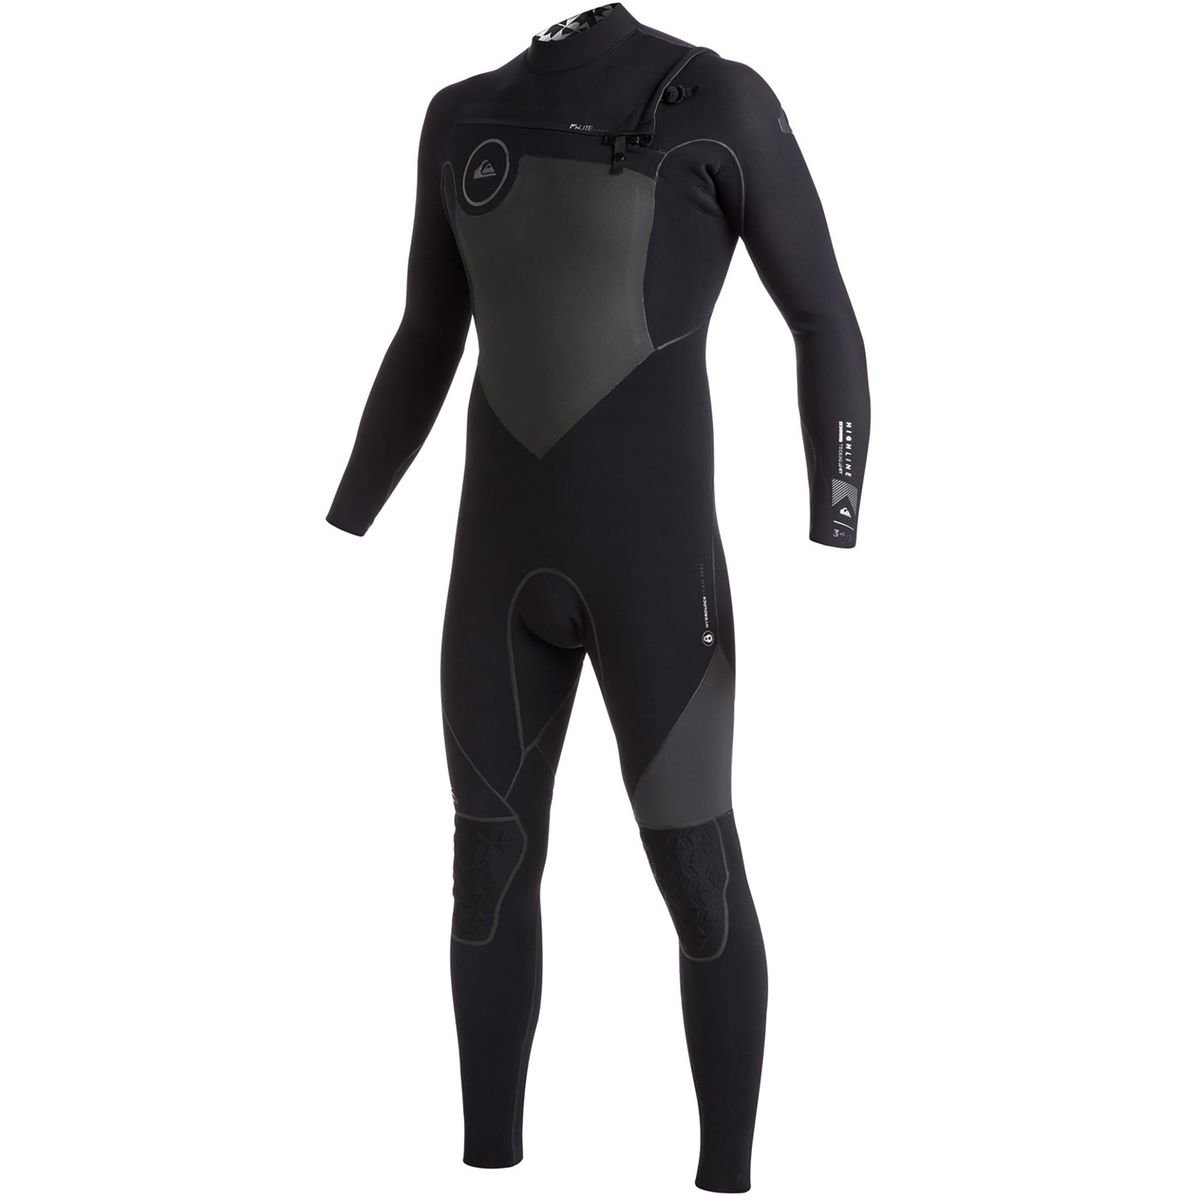 【国内発送】 QuiksilverメンズHighline Small 2 x接着3.5 –/ 3 mm – Chest Full Zip Full Wetsuit Chest Zip Full Wetsuit B01M9CSMCN ダークグレー(anthracite) Small Small|ダークグレー(anthracite), 本吉町:27ee950c --- svecha37.ru